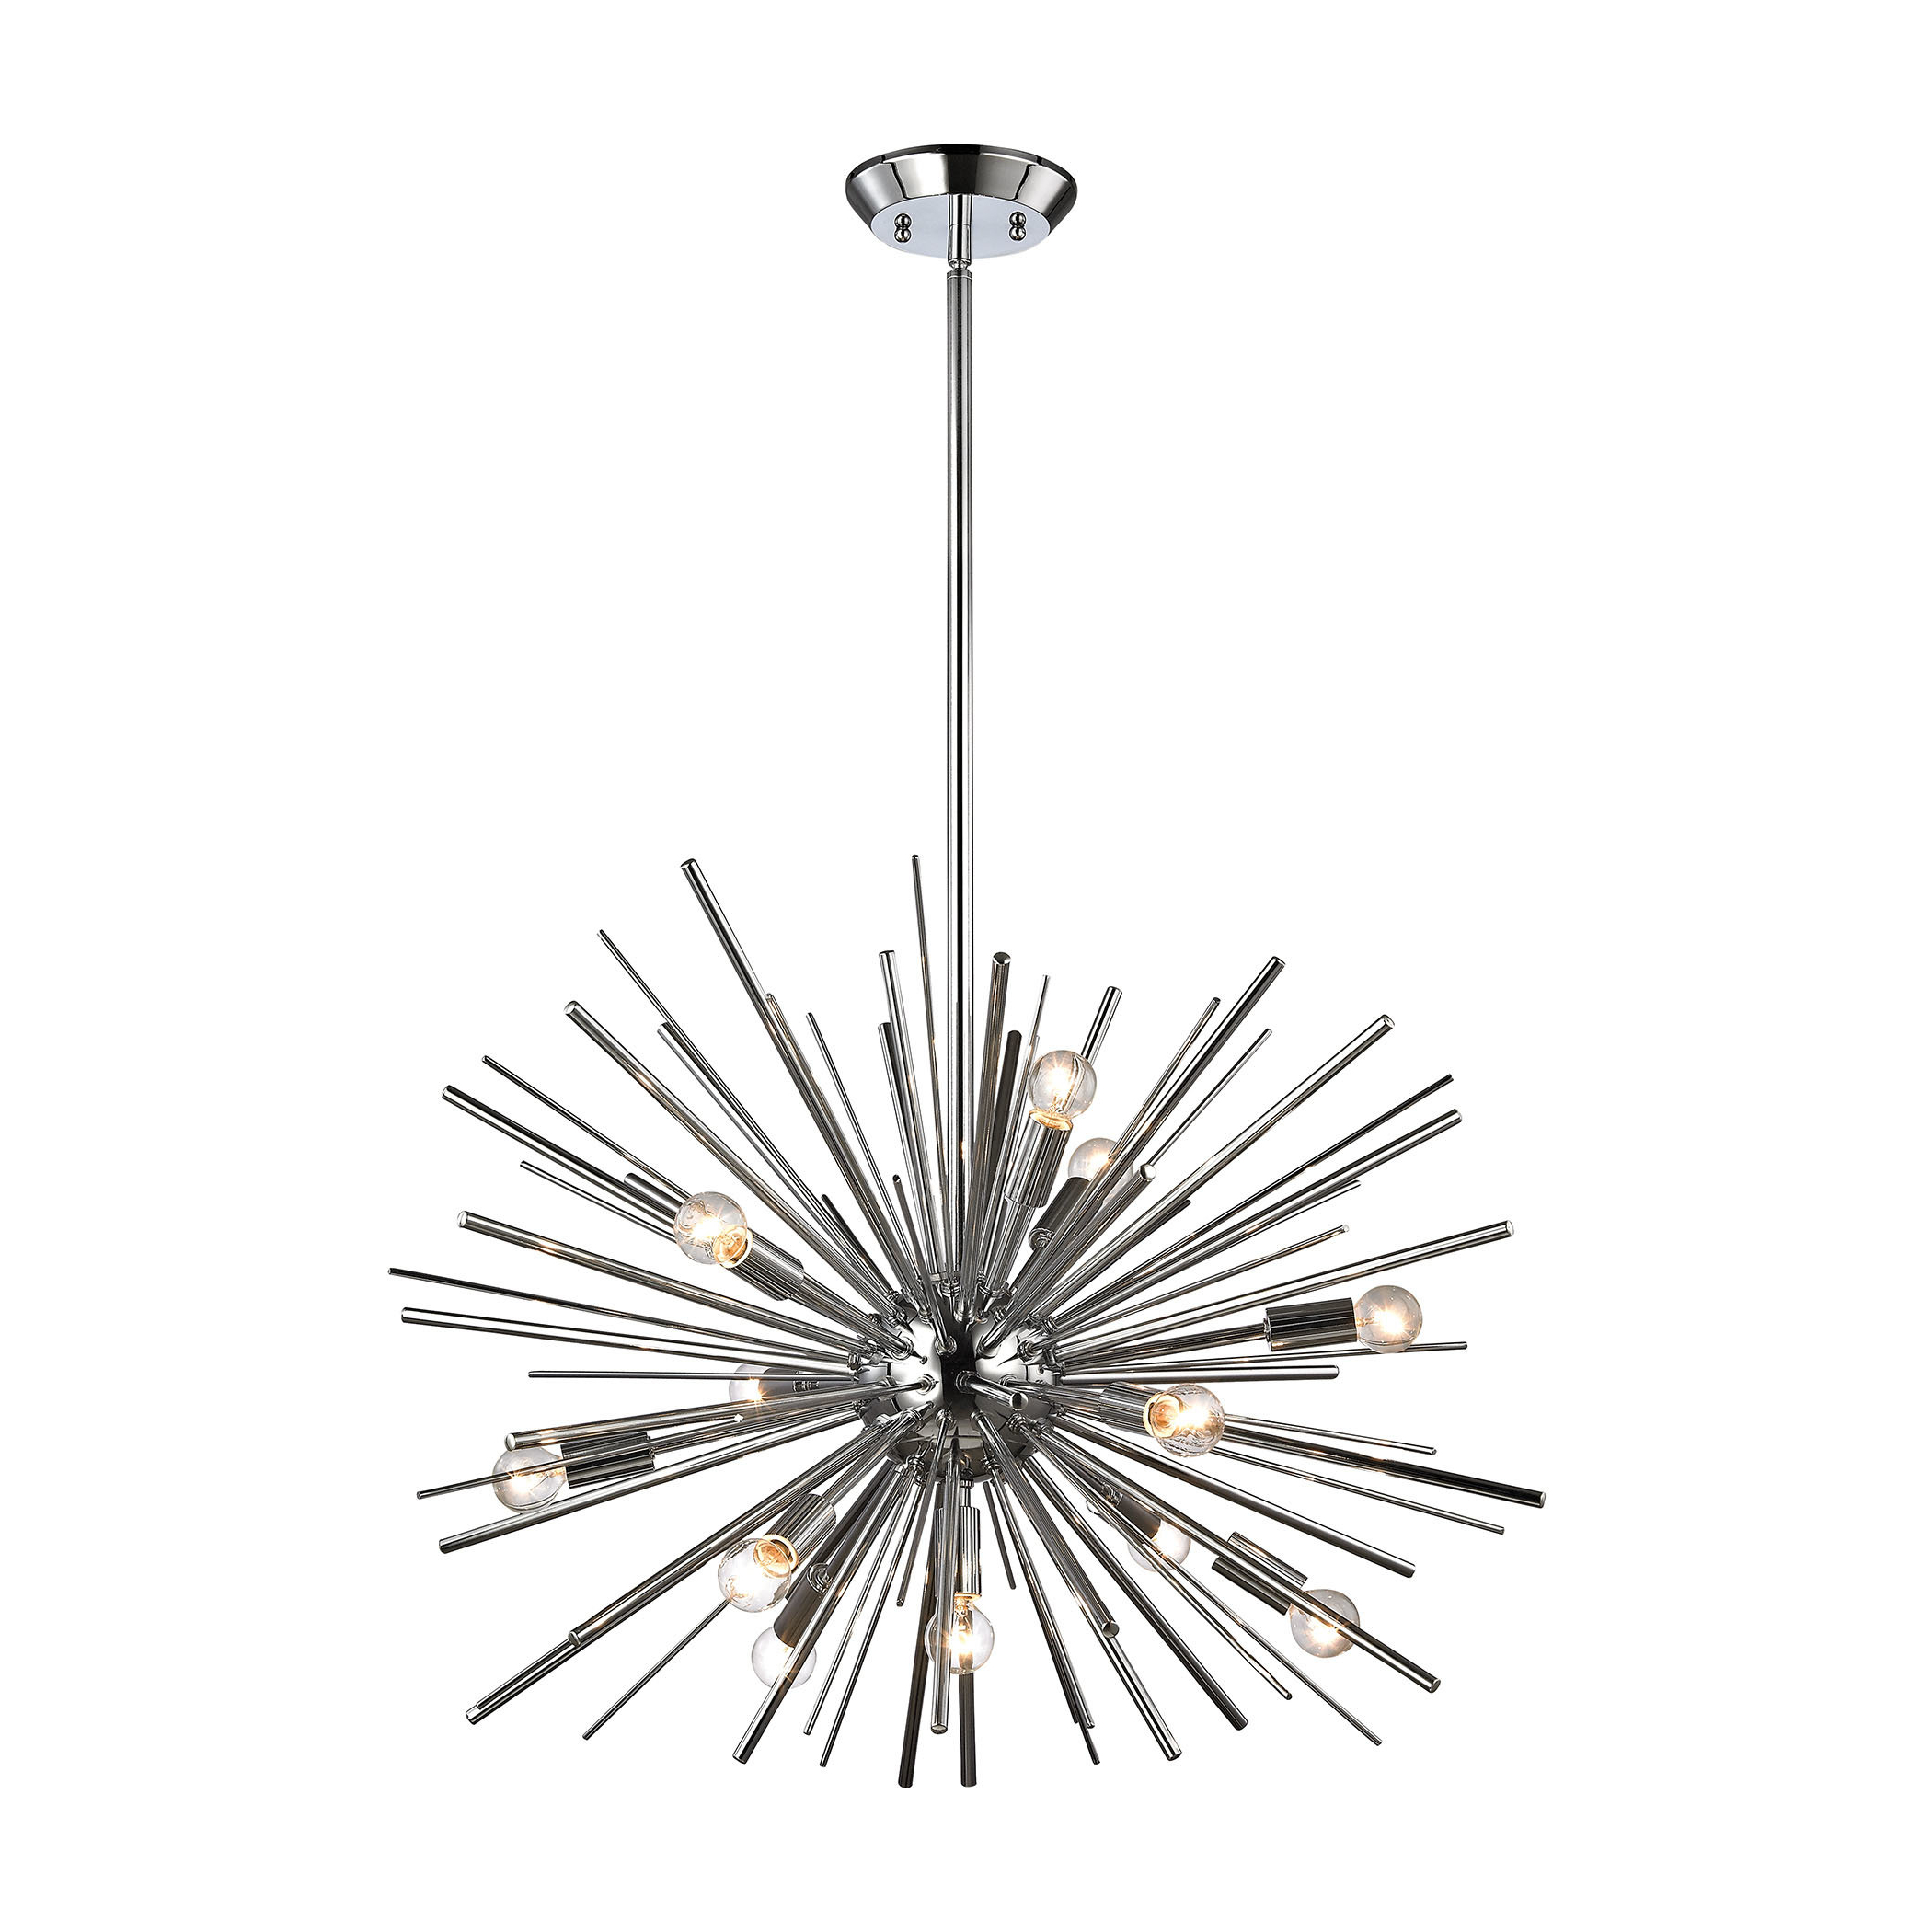 Elinore 12 Light Sputnik Chandelier Intended For Most Up To Date Nelly 12 Light Sputnik Chandeliers (View 7 of 25)